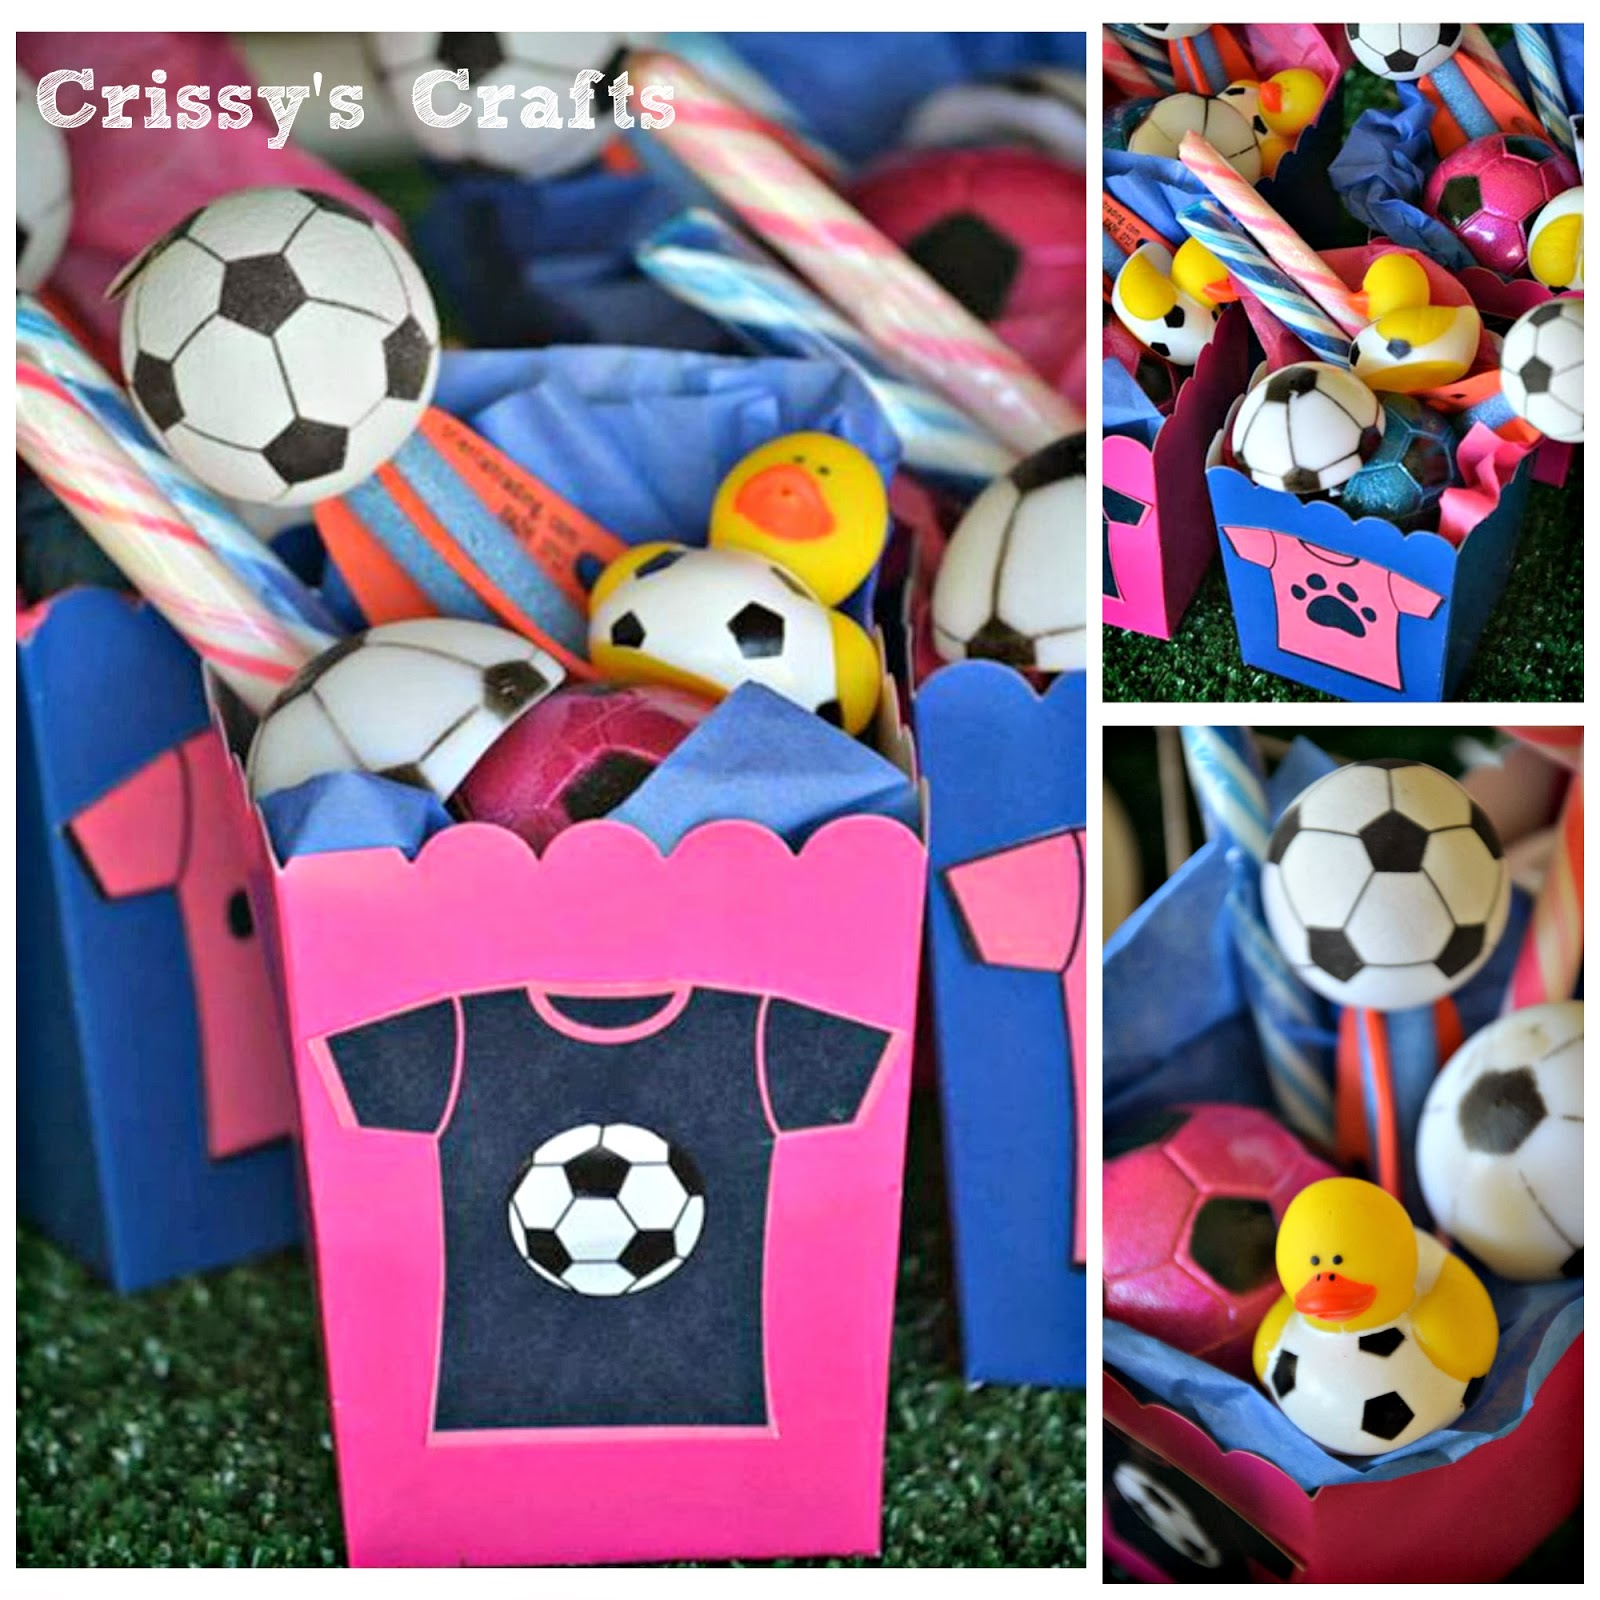 Soccer ball craft ideas - Soccer Ball Craft Ideas 53